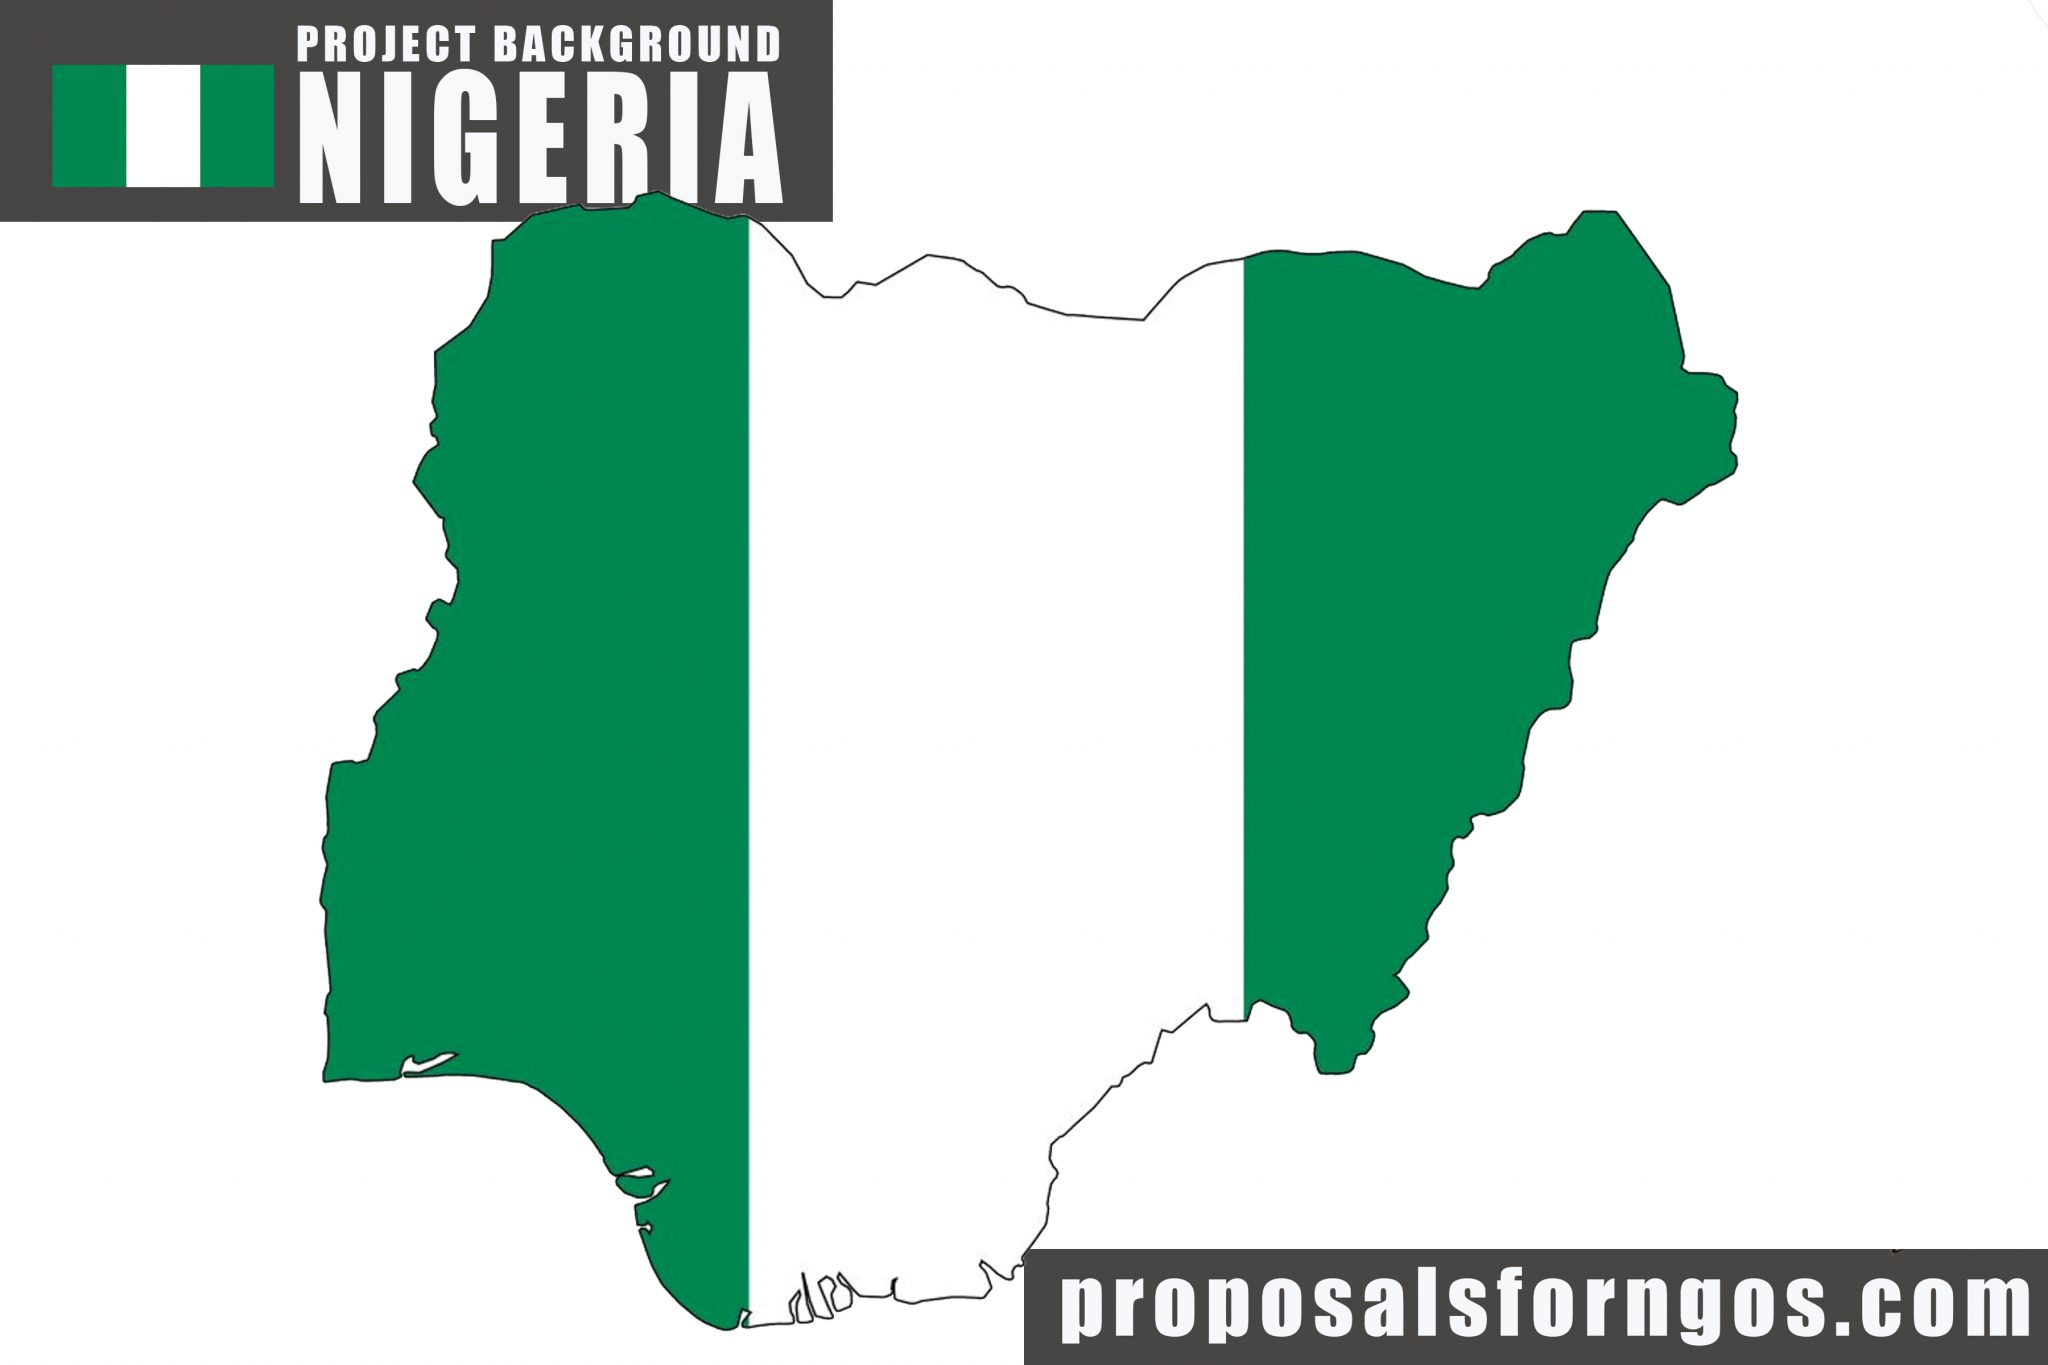 Project Background NIGERIA with map and flag